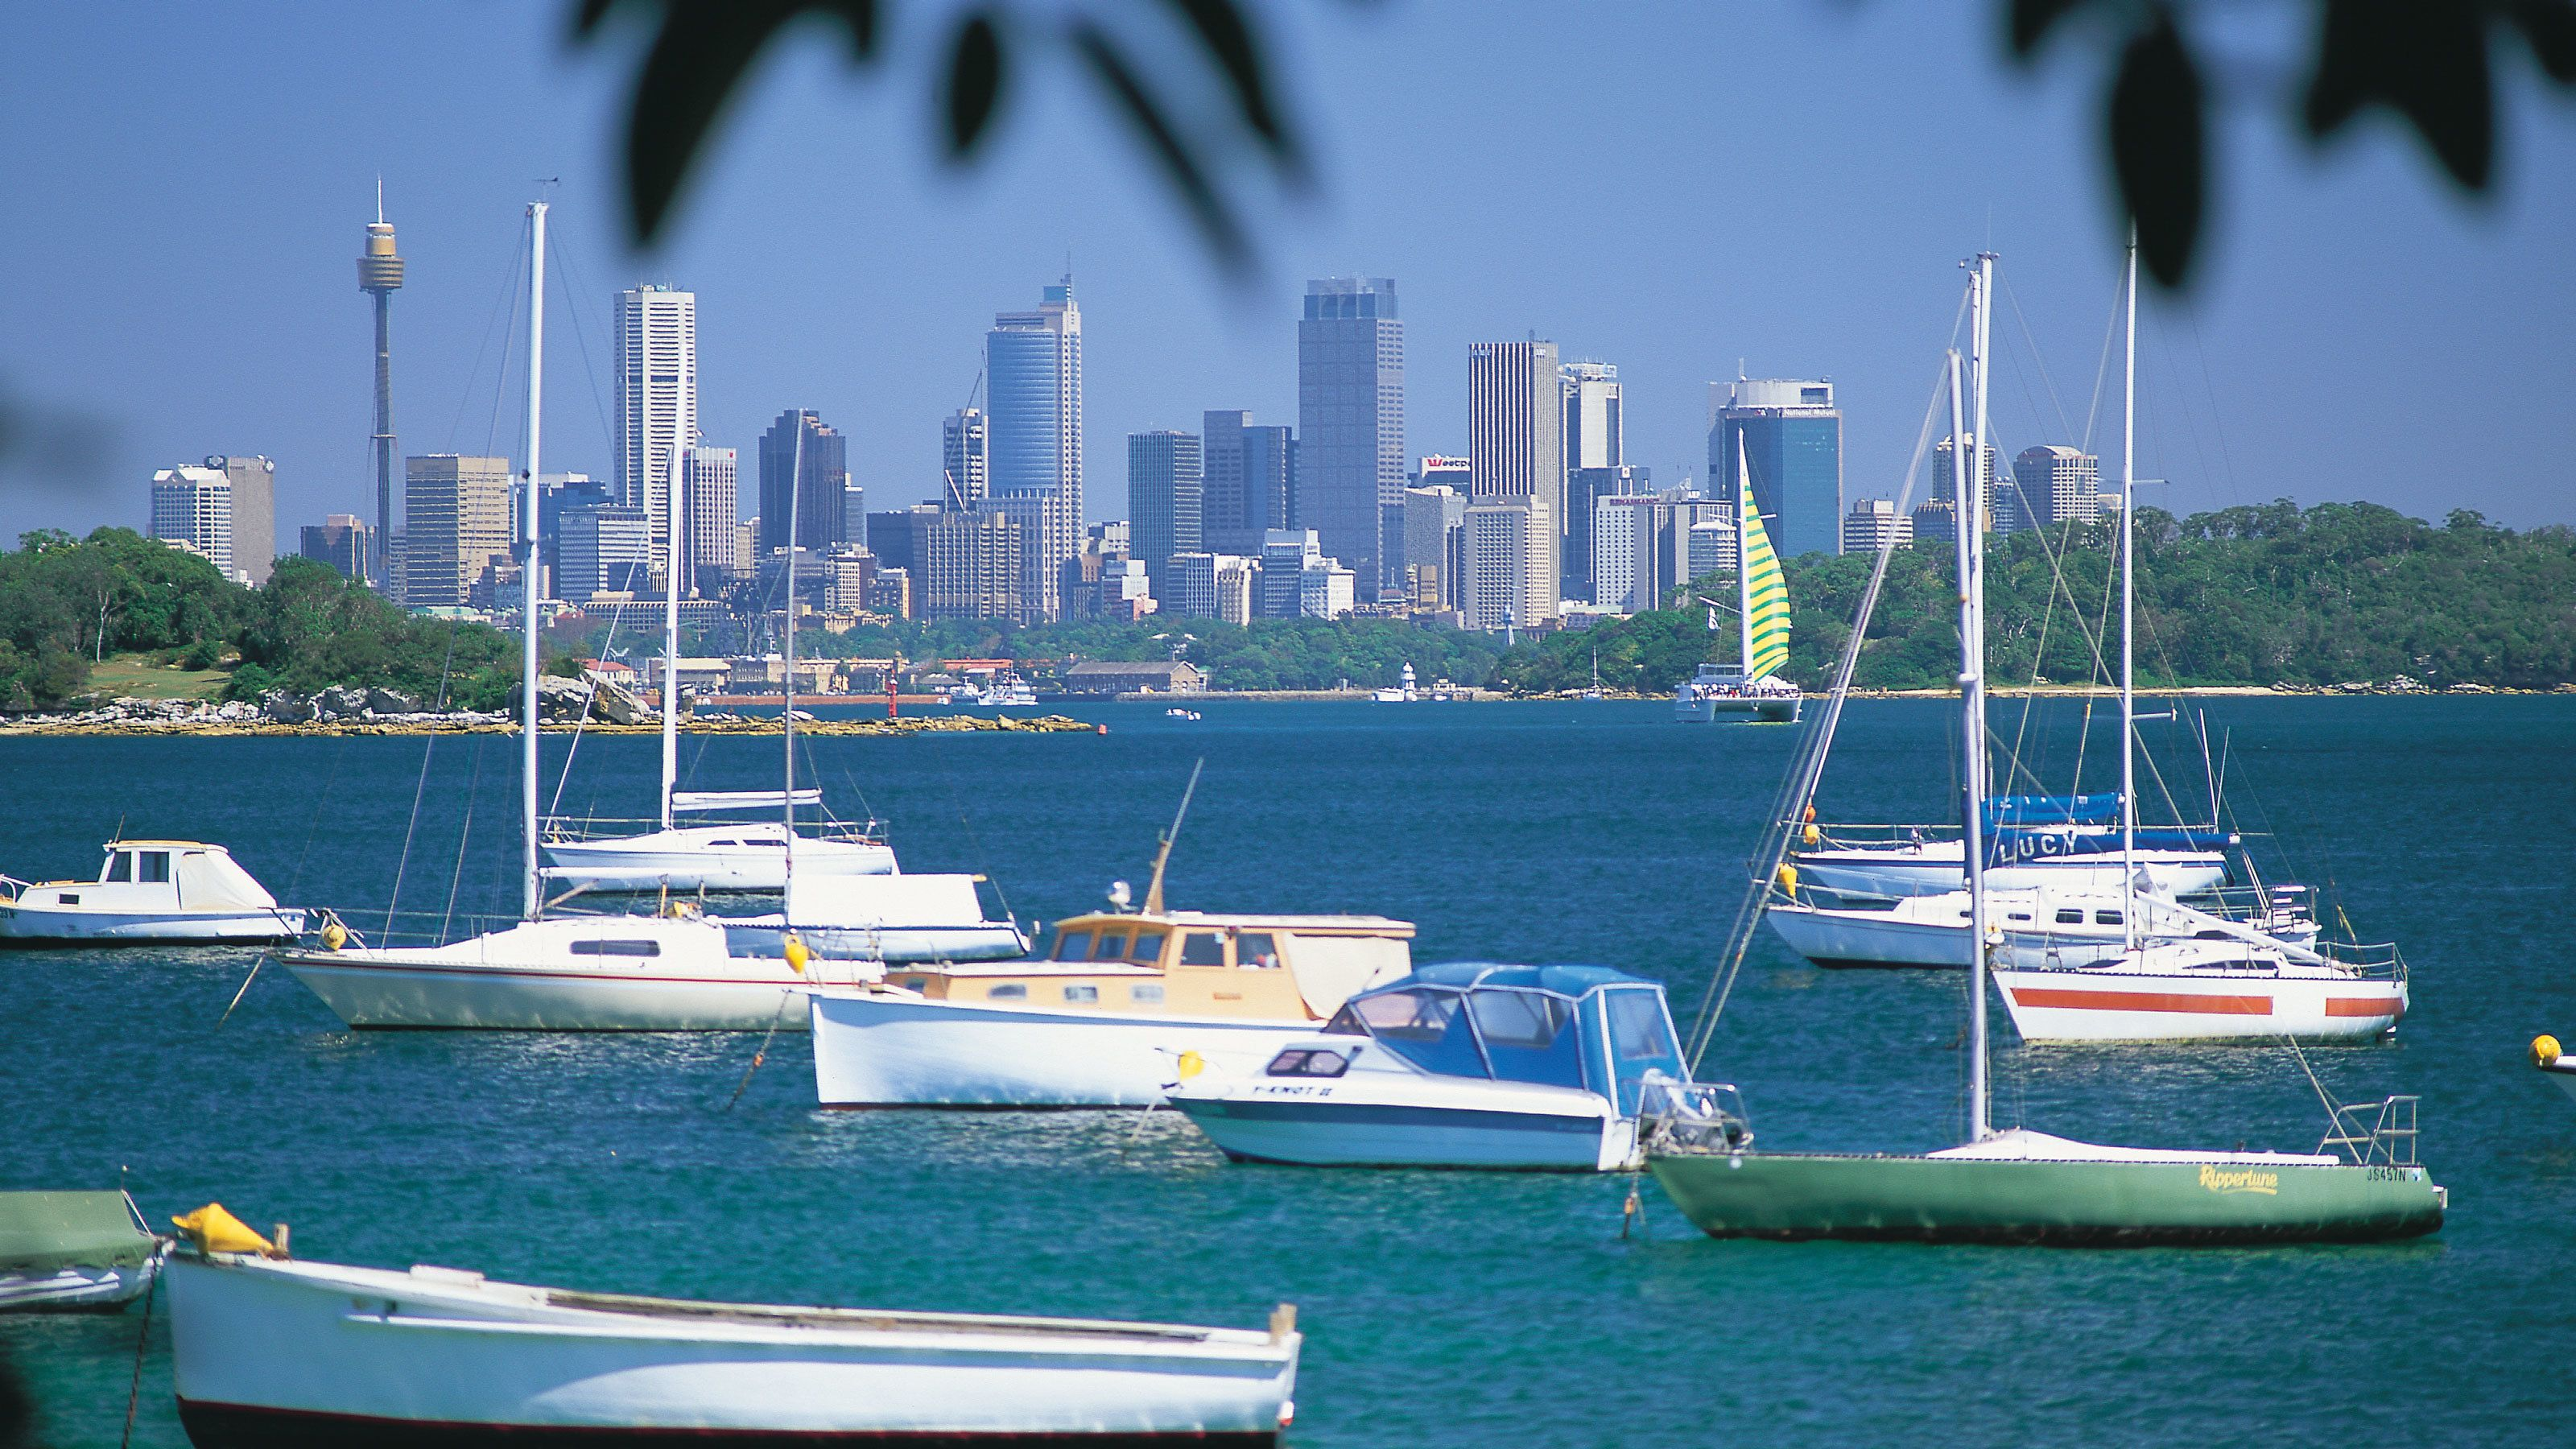 Scenic view of the sailboats on the waters of the Sydney Harbour with the view of the city buildings in the back